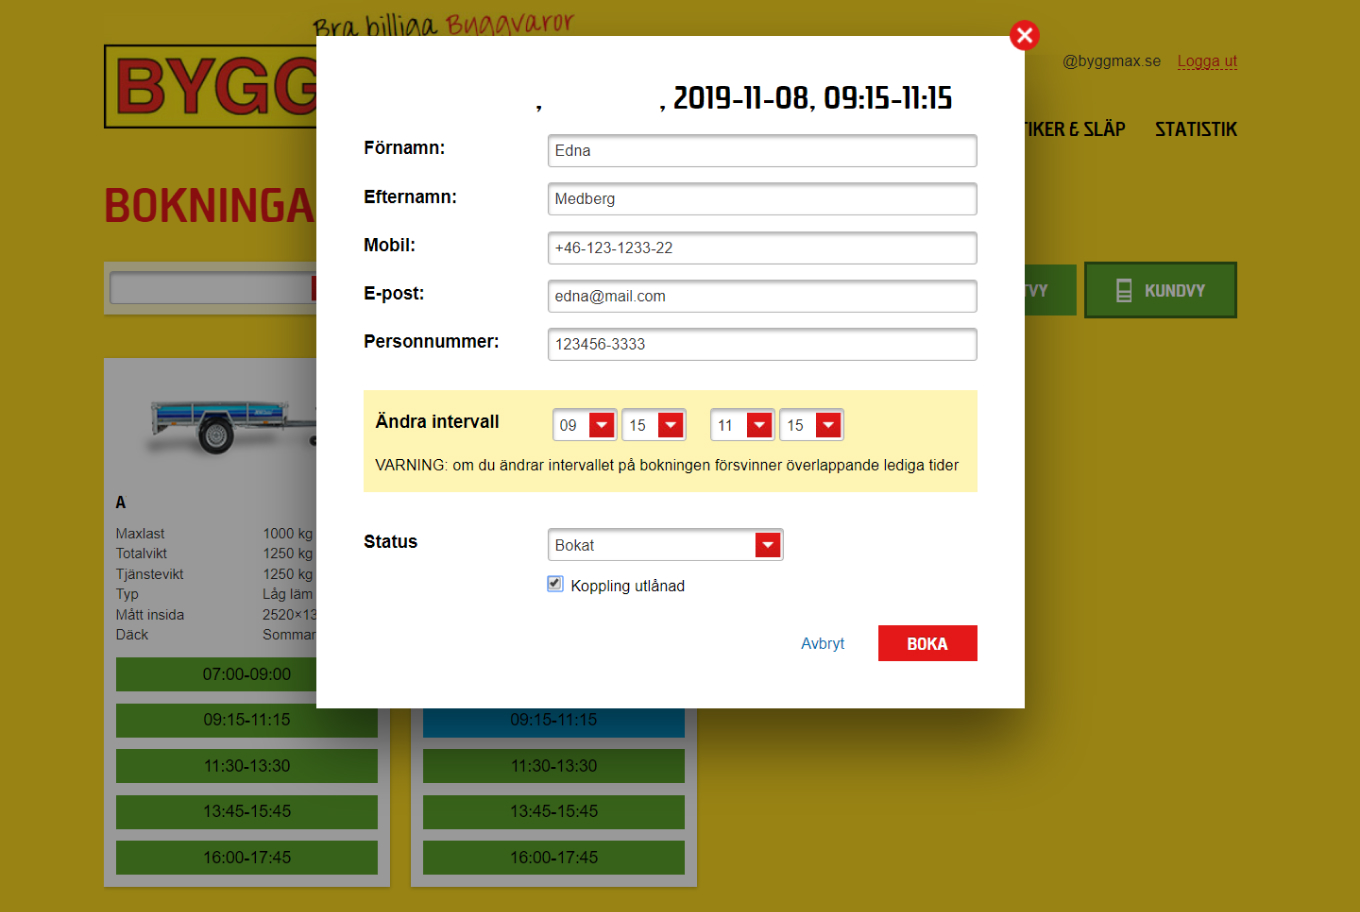 Byggmax store managers can use the system to easily access an overview of bookings, modify trailer availability, and make bookings on behalf of customers.